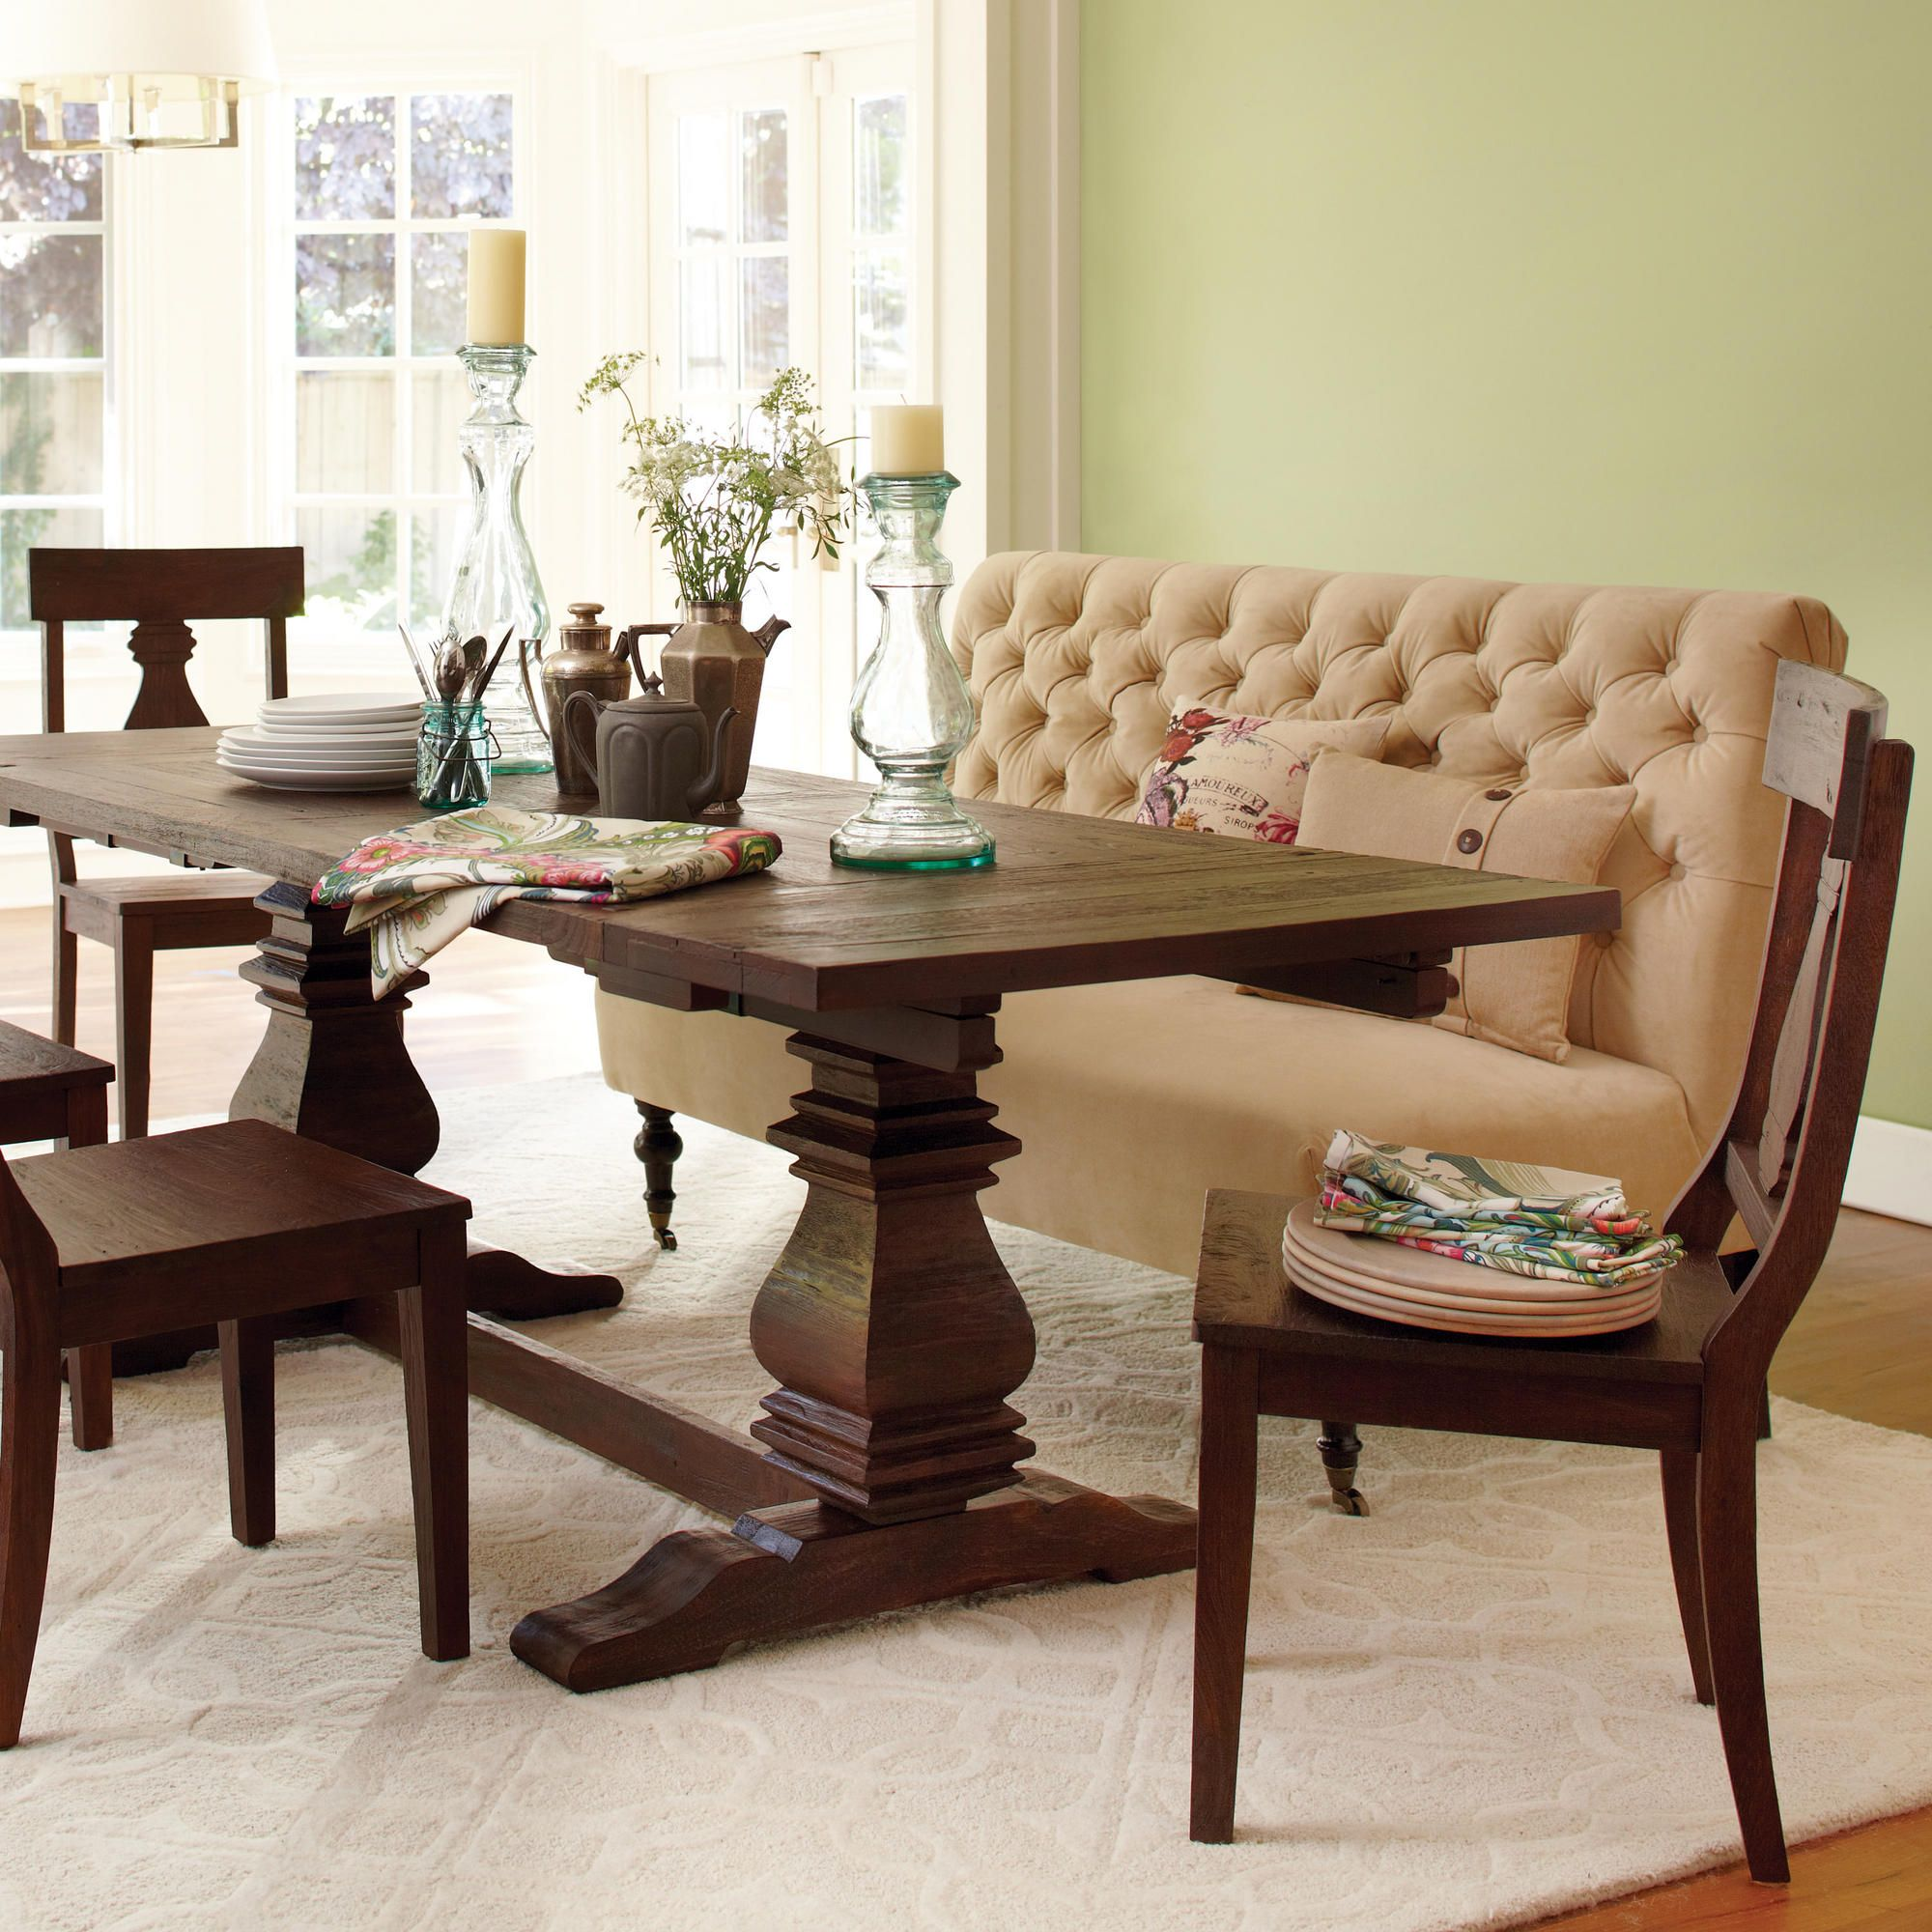 78+ images about dinning room furniture on pinterest   tufted